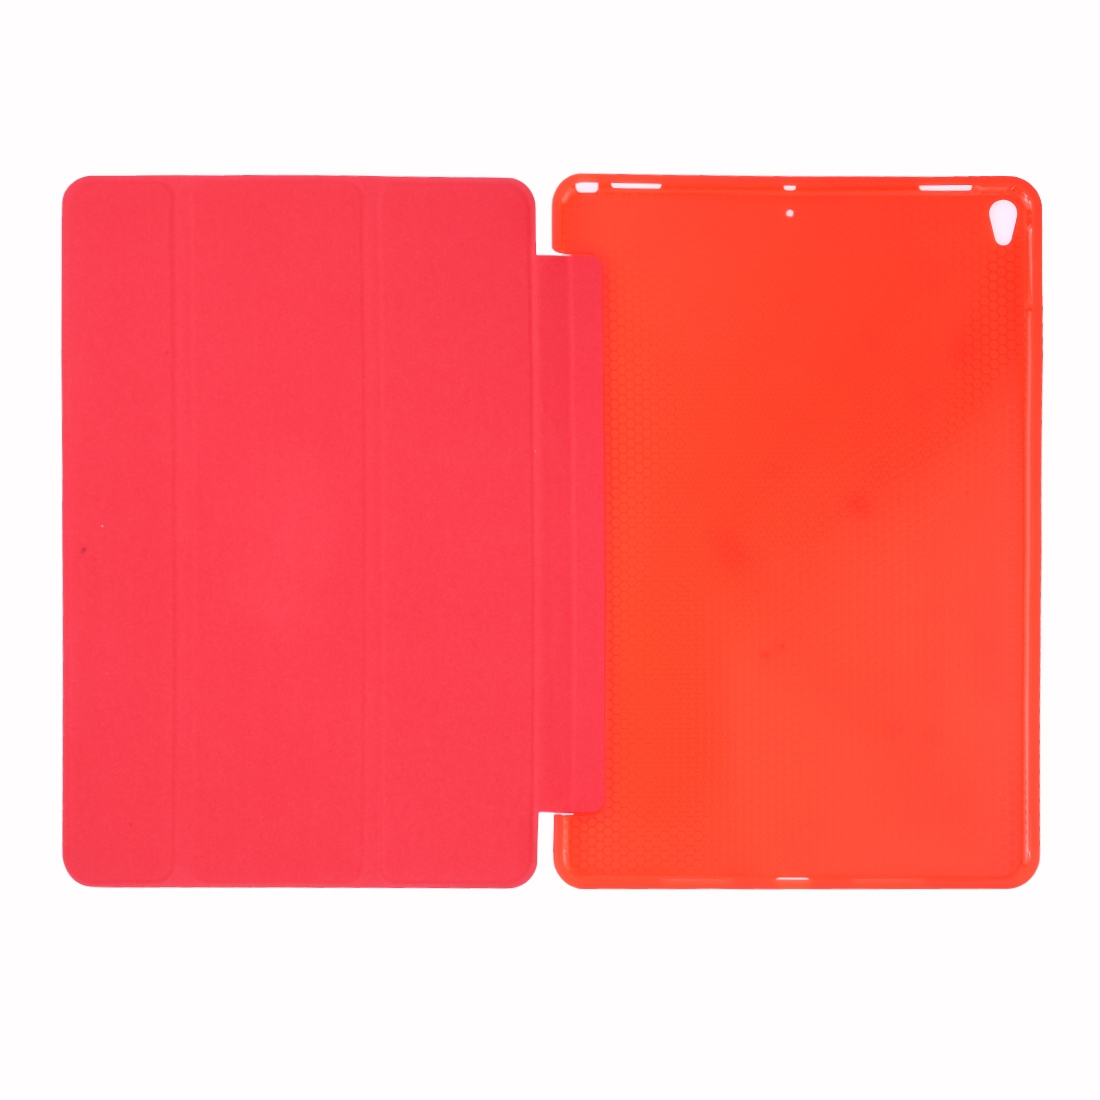 Silk Textured Leather iPad Air 2 Case (2019)/ Pro 10.5 inch, w/Tri-Fold Auto Sleep (Red)